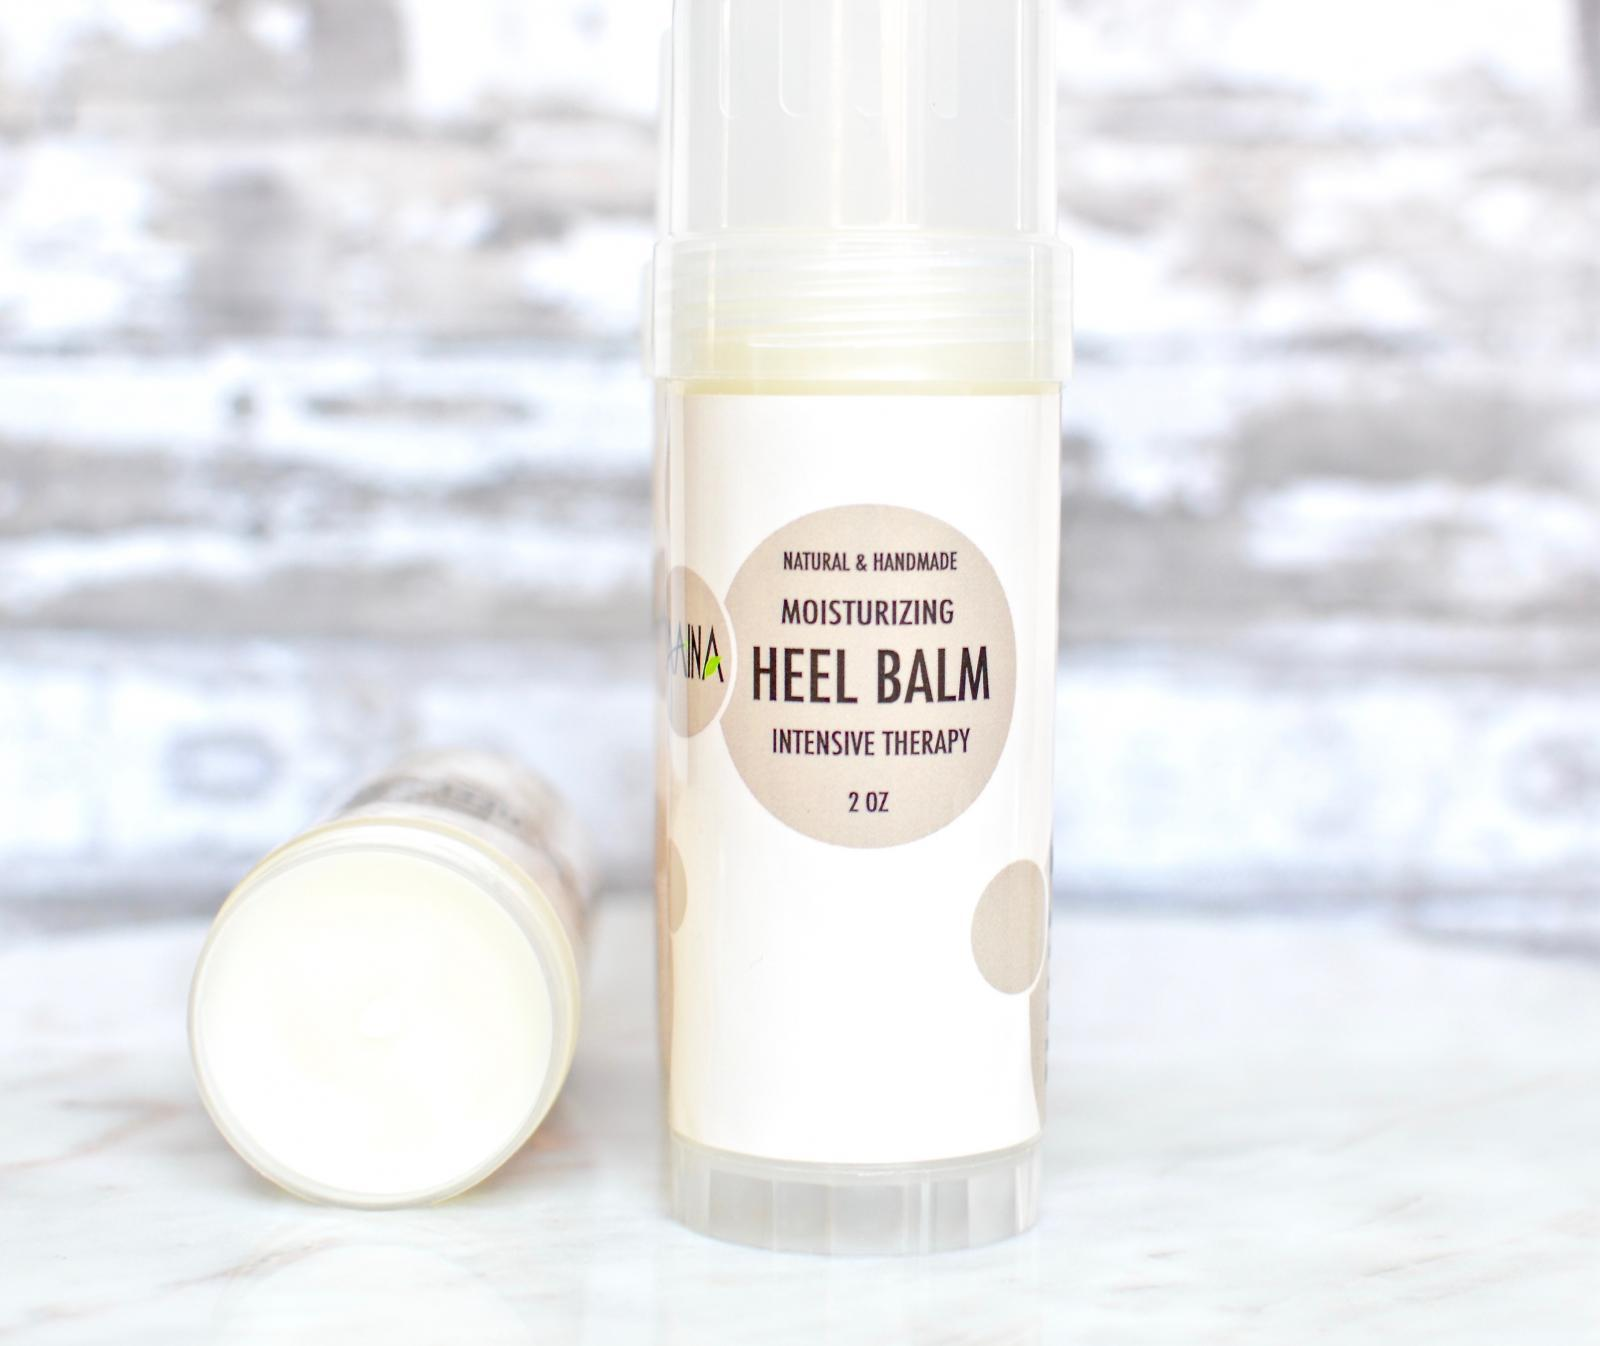 Heel Balm - Intensive therapy to repair dry & cracked feet